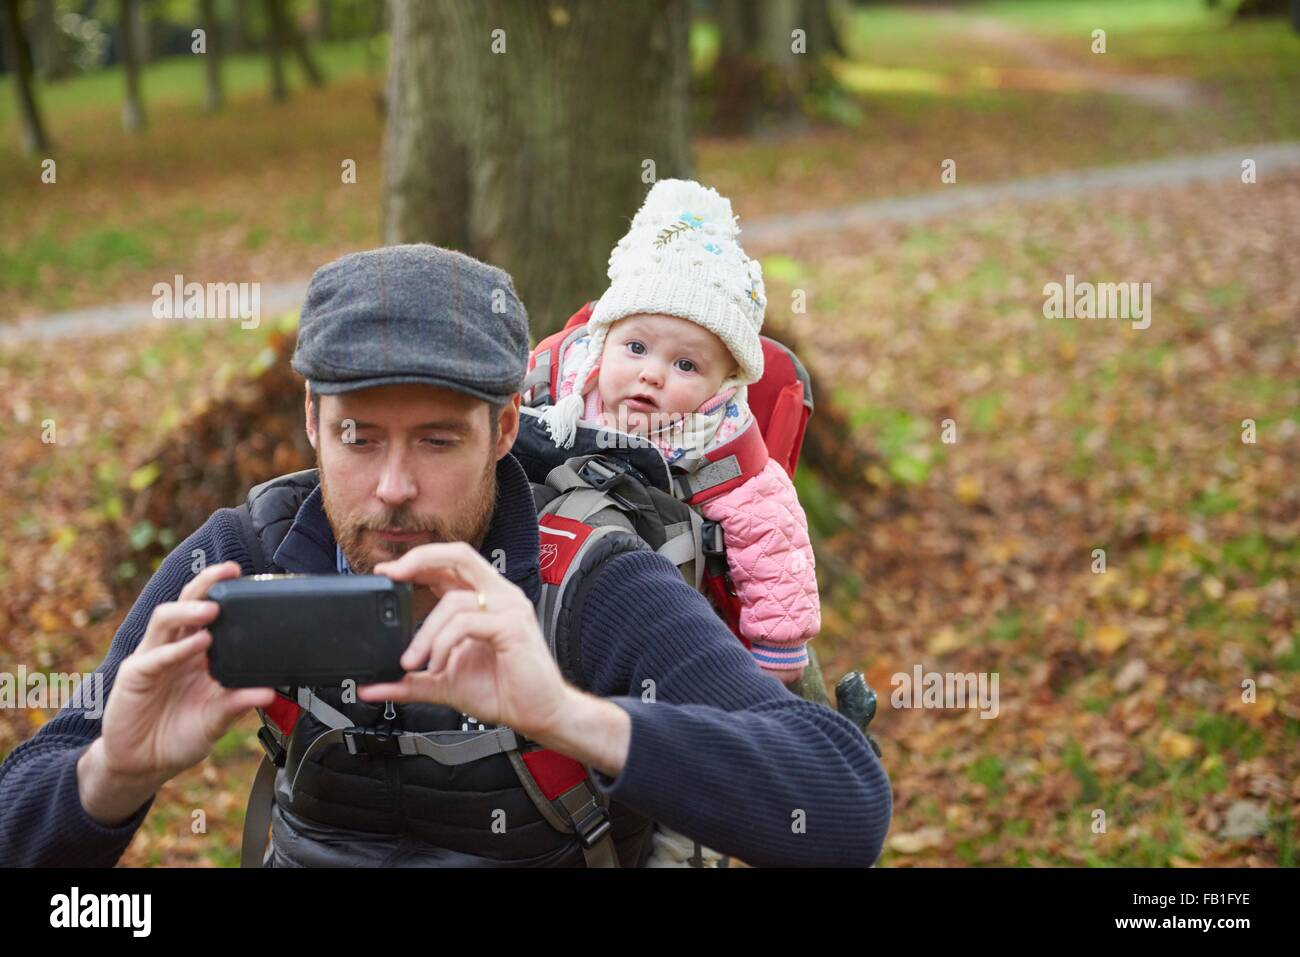 Mid adult man in park wearing flat cap carrying daughter on back in baby carrier taking selfie using smartphone - Stock Image